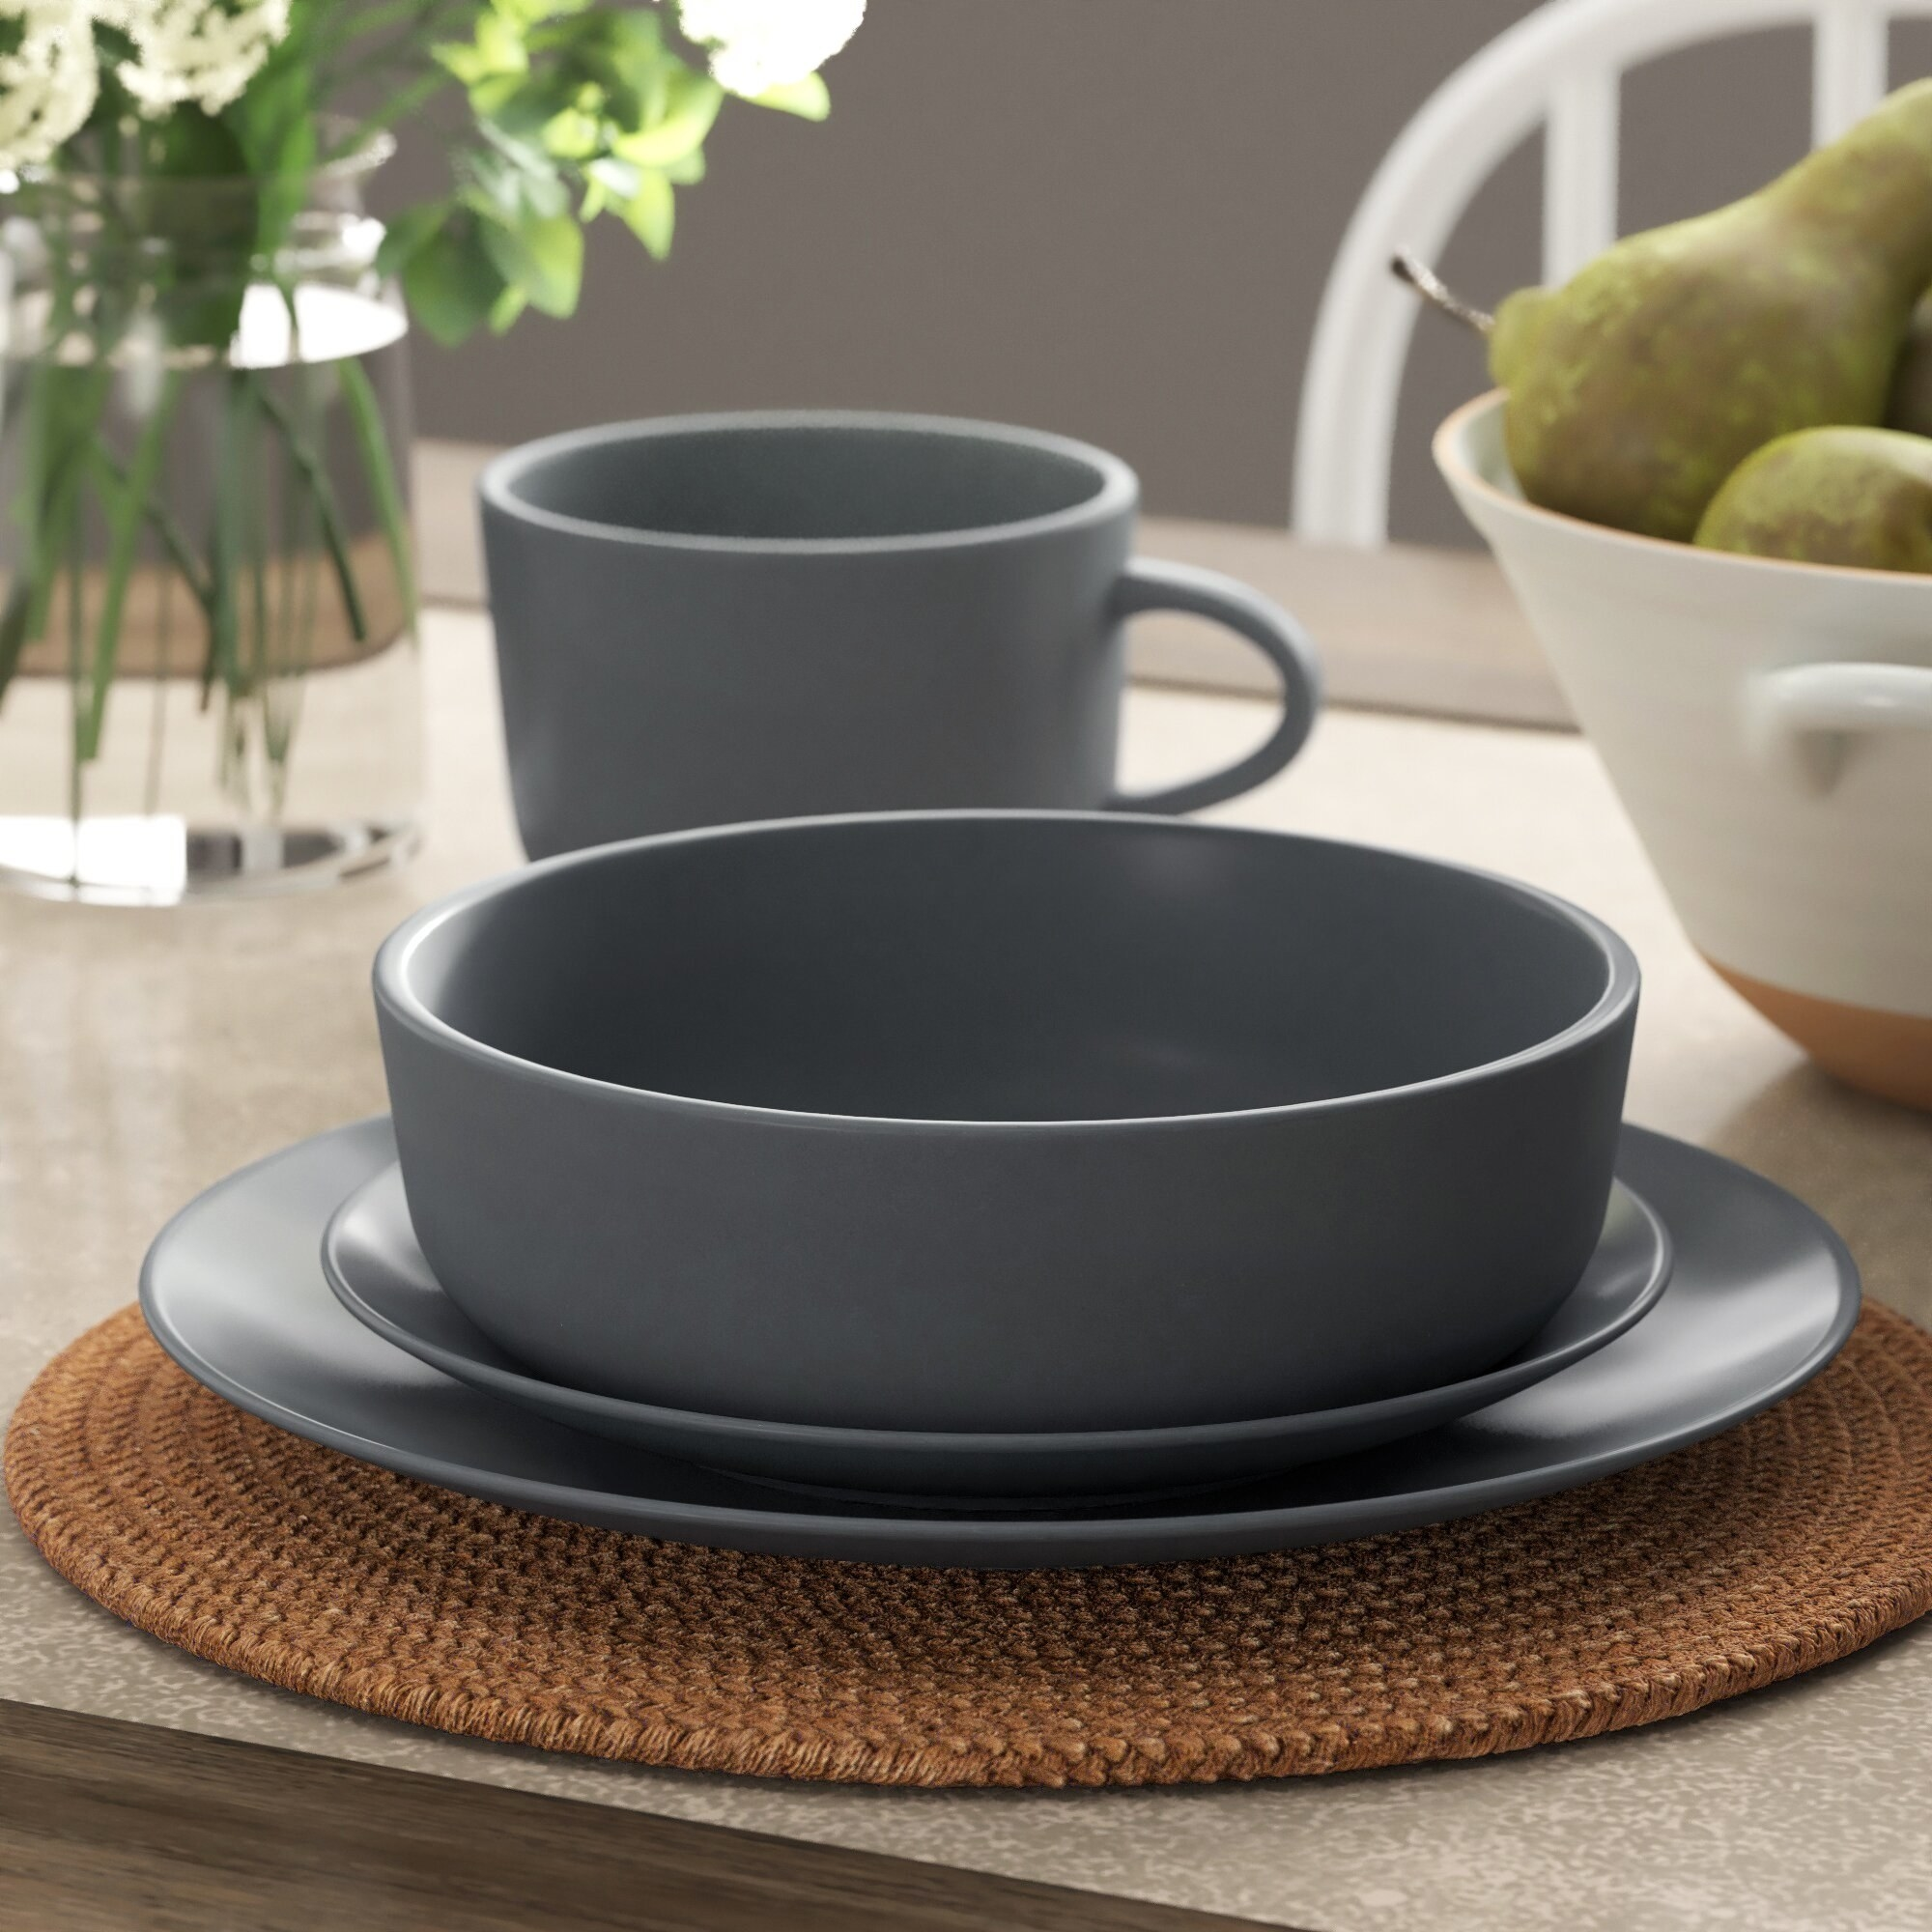 A big gray plate with a little plate and bowl on top and a mug next to it on a dining table